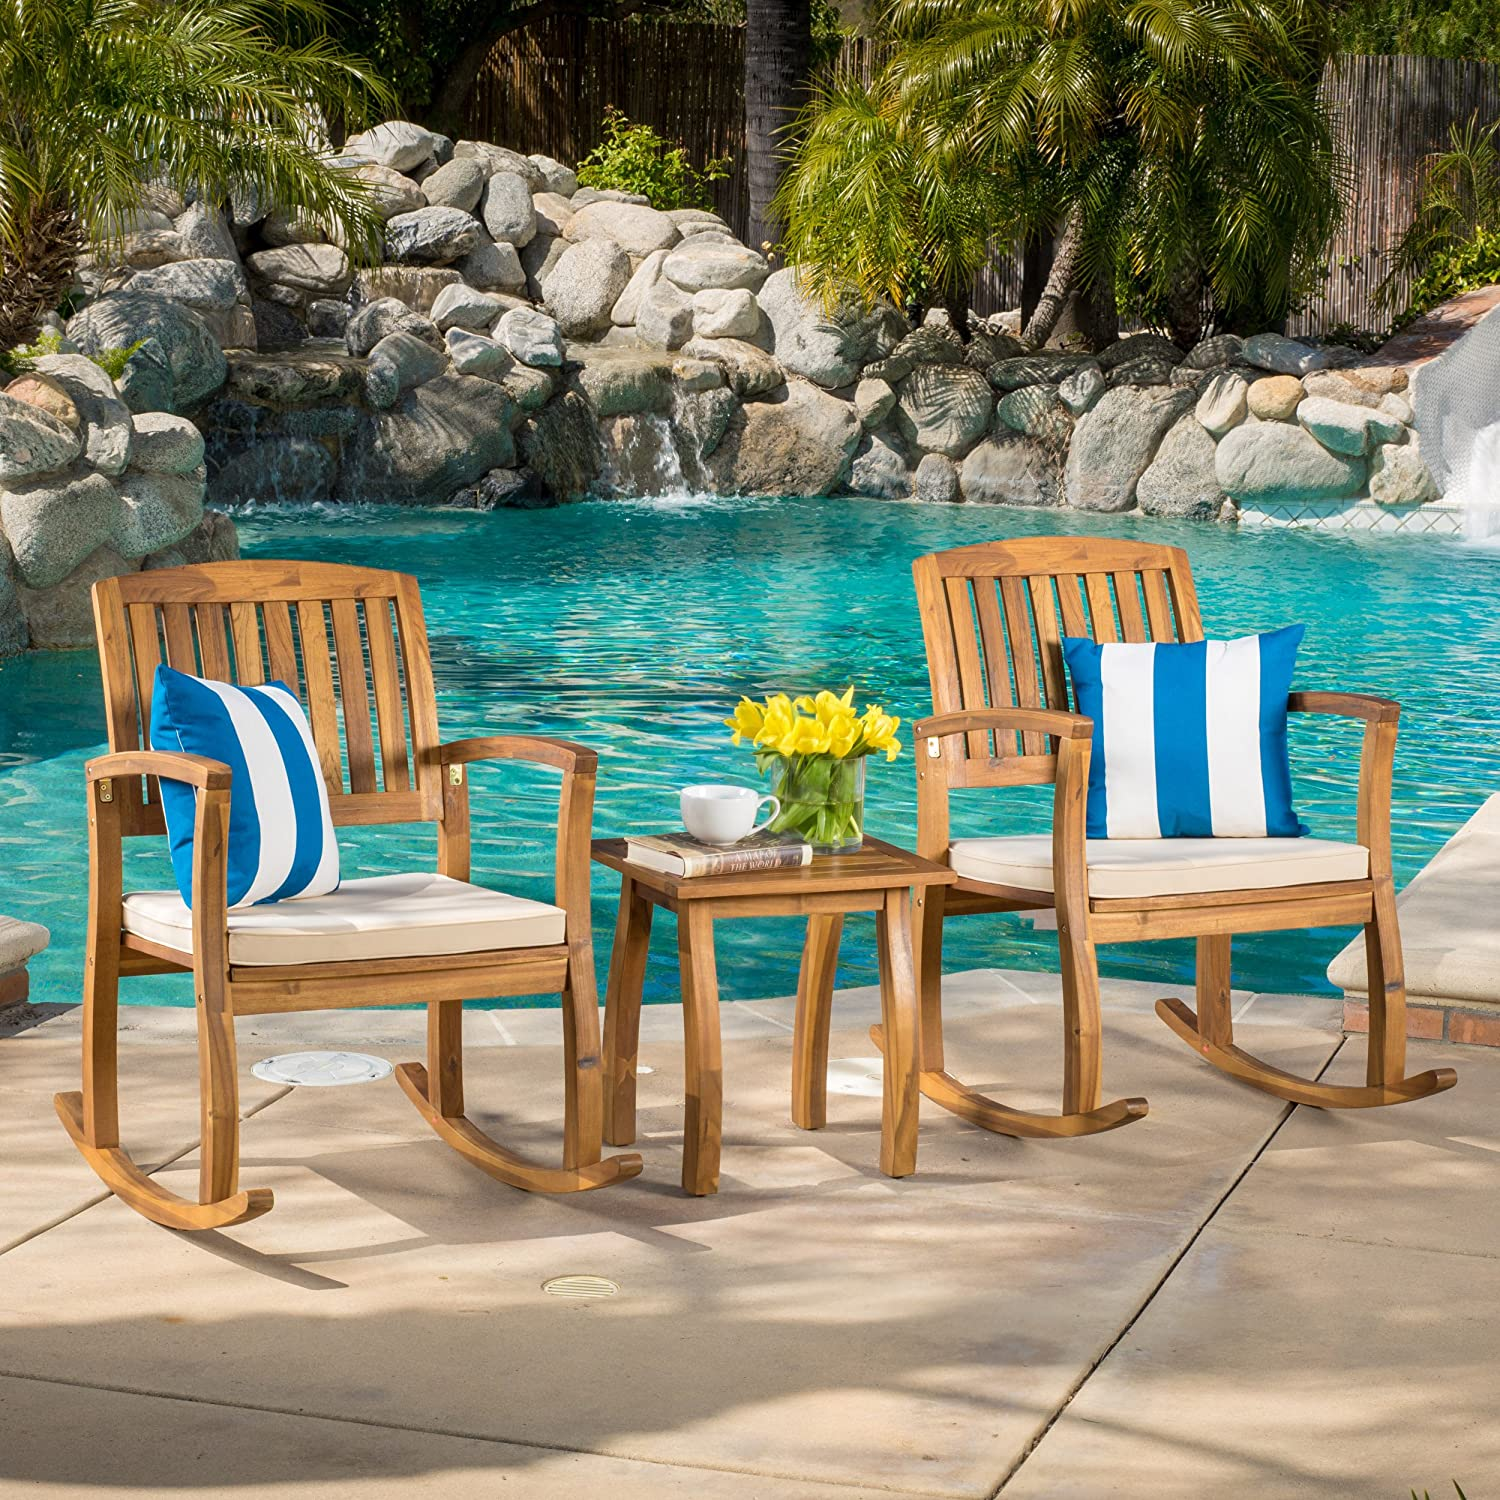 Christopher Knight Home 297254 South Hampton Rocking Chair with Cushion Set of 2 and Acacia Accent Table, Dimensions 33.25 D x 24.00 W x 35.75 H, Set Teak Finish